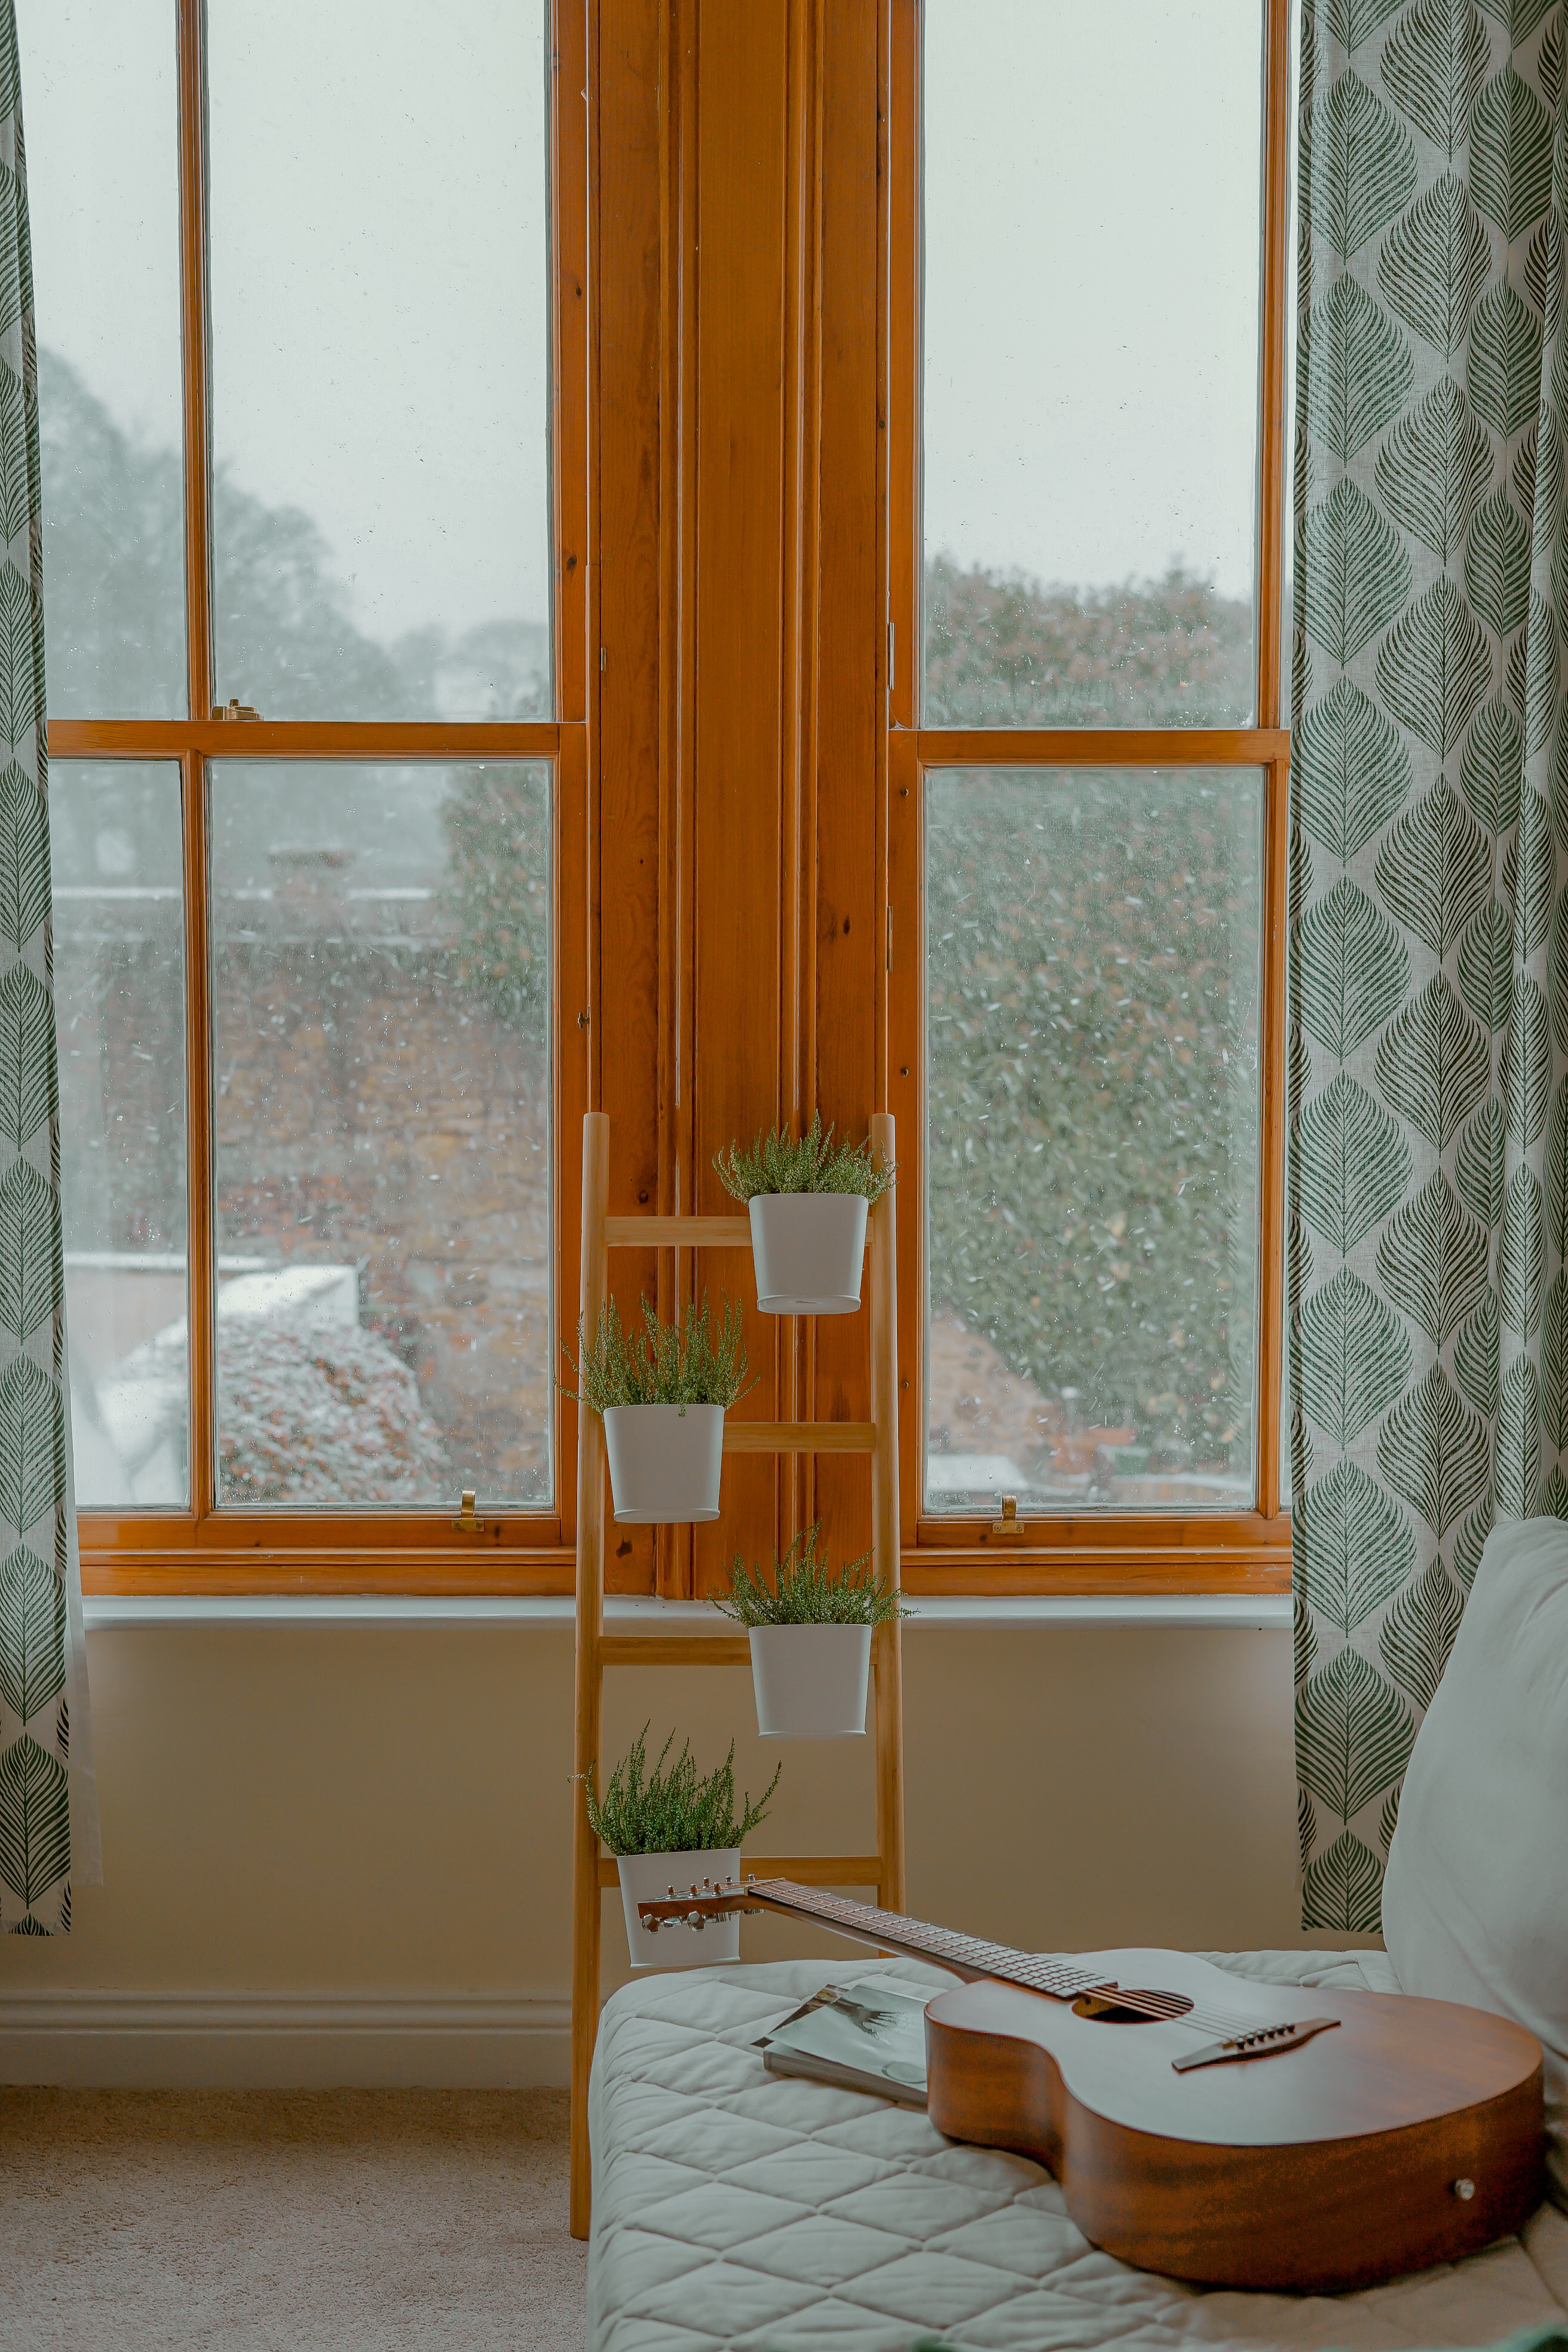 How to prepare the home for winter - Maidstr Cleaning